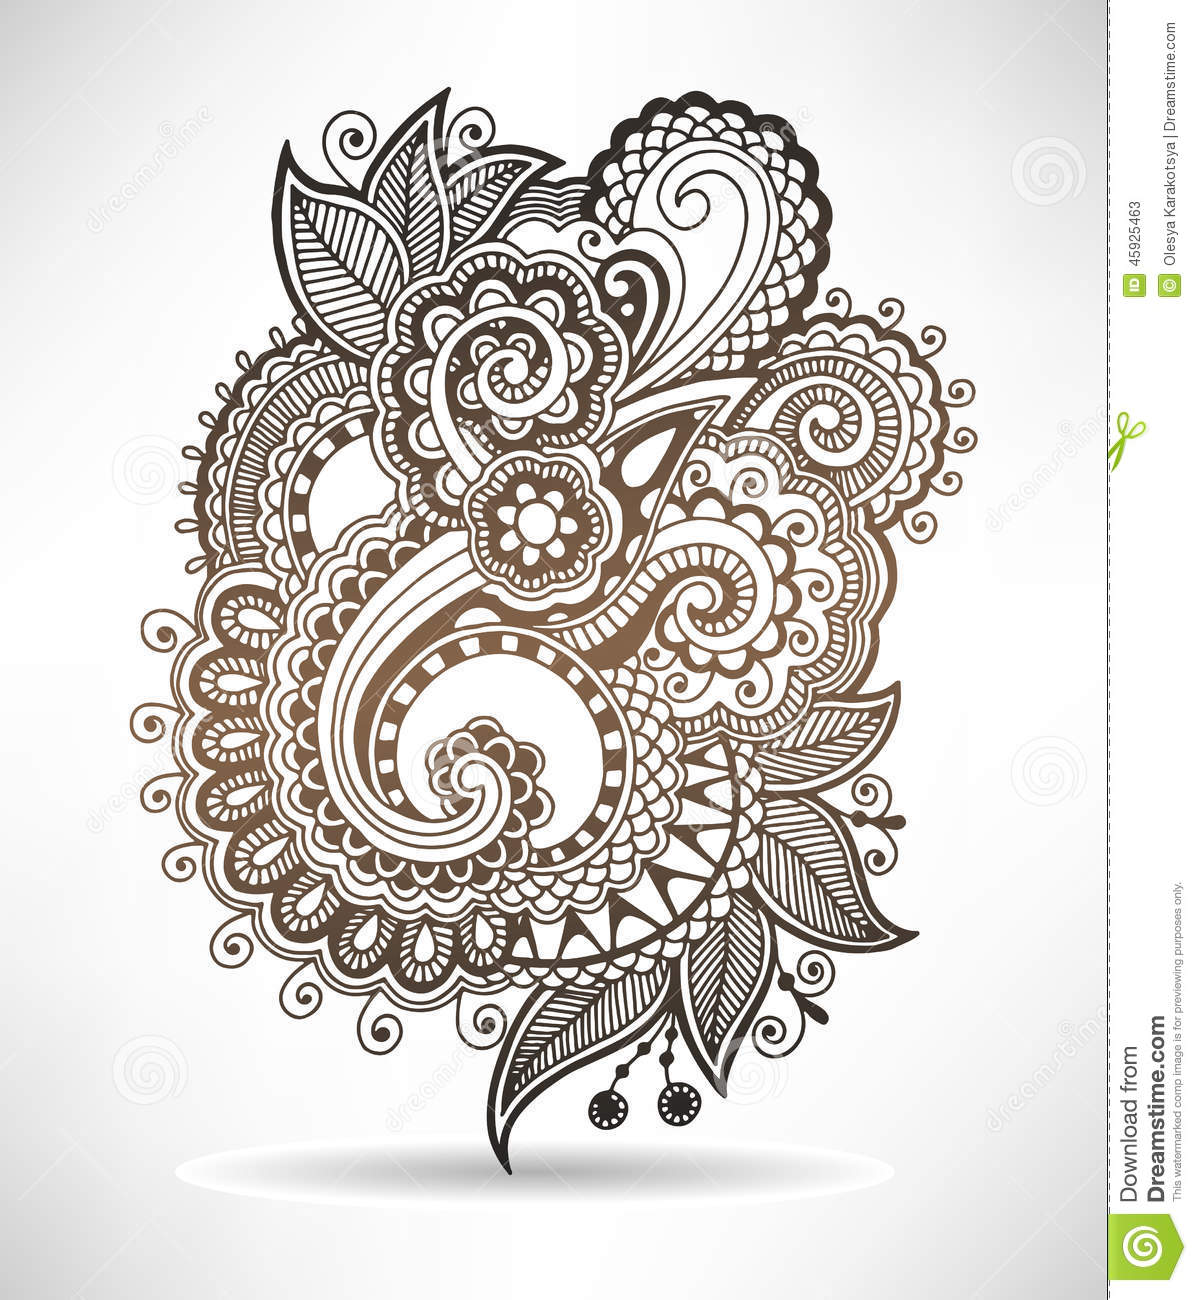 Line Art Typography : Line art ornate flower design ukrainian ethnic stock